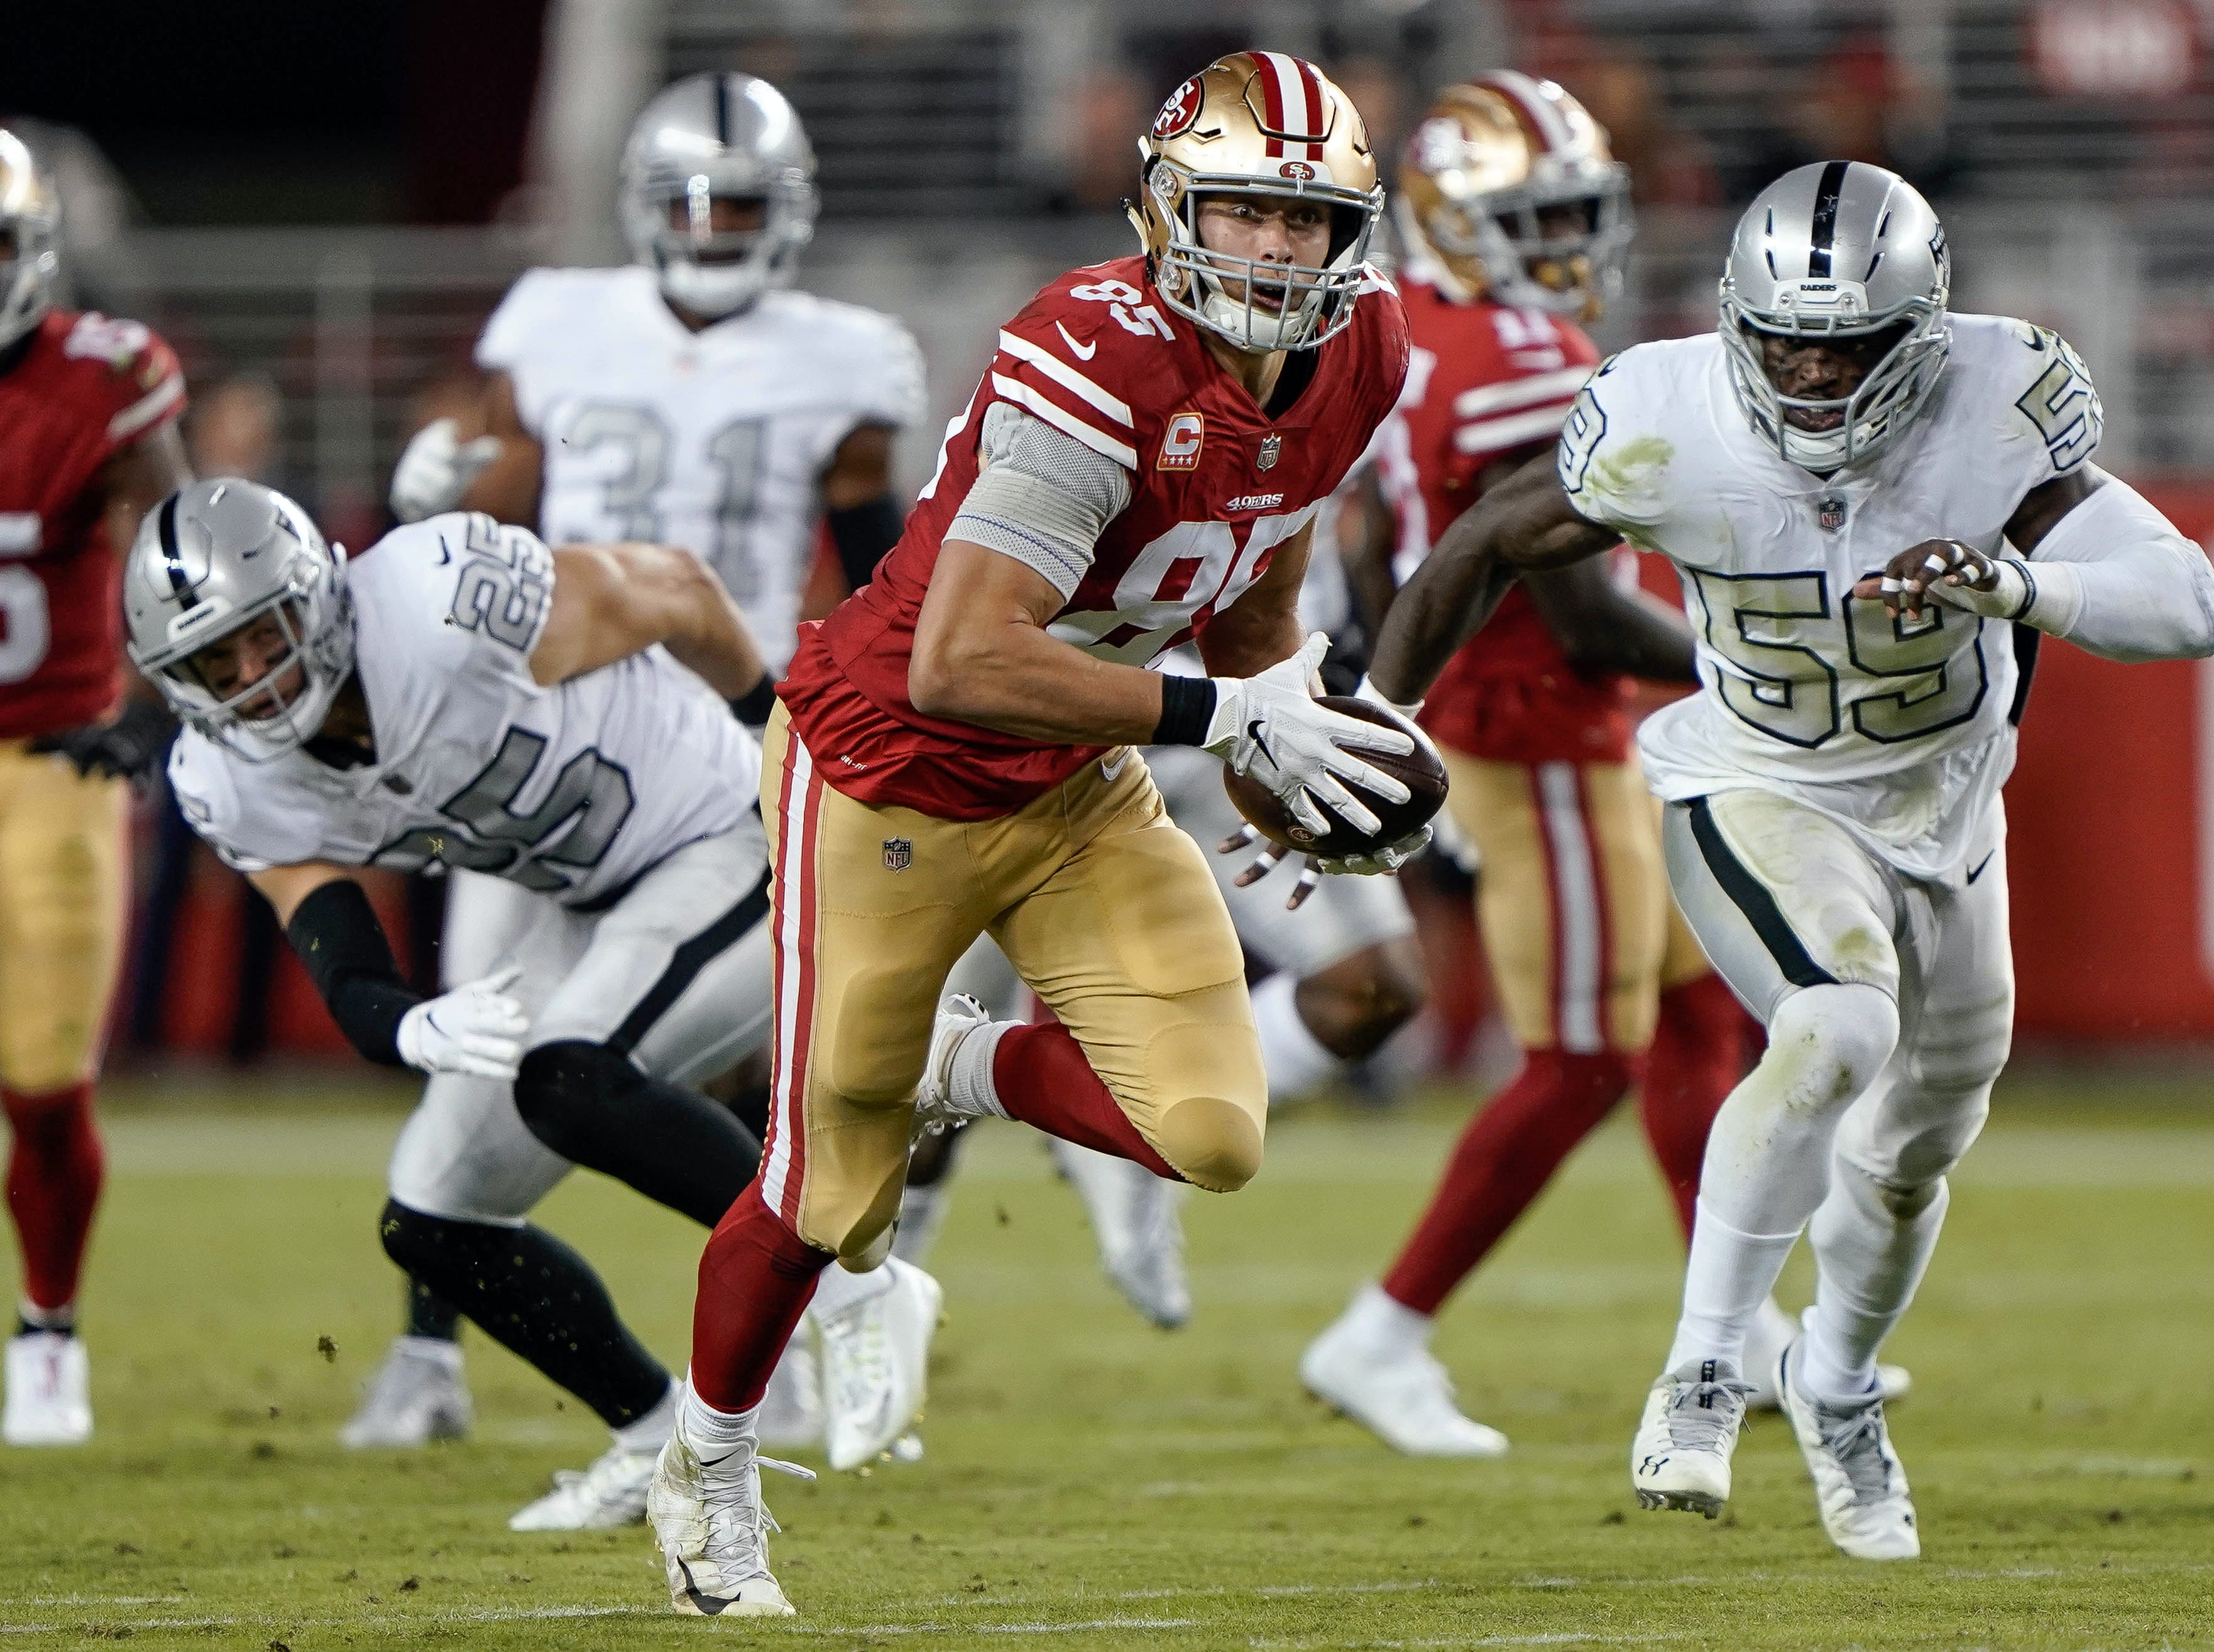 San Francisco 49ers tight end George Kittle (85) runs with the ball against the Oakland Raiders during the third quarter at Levi's Stadium.